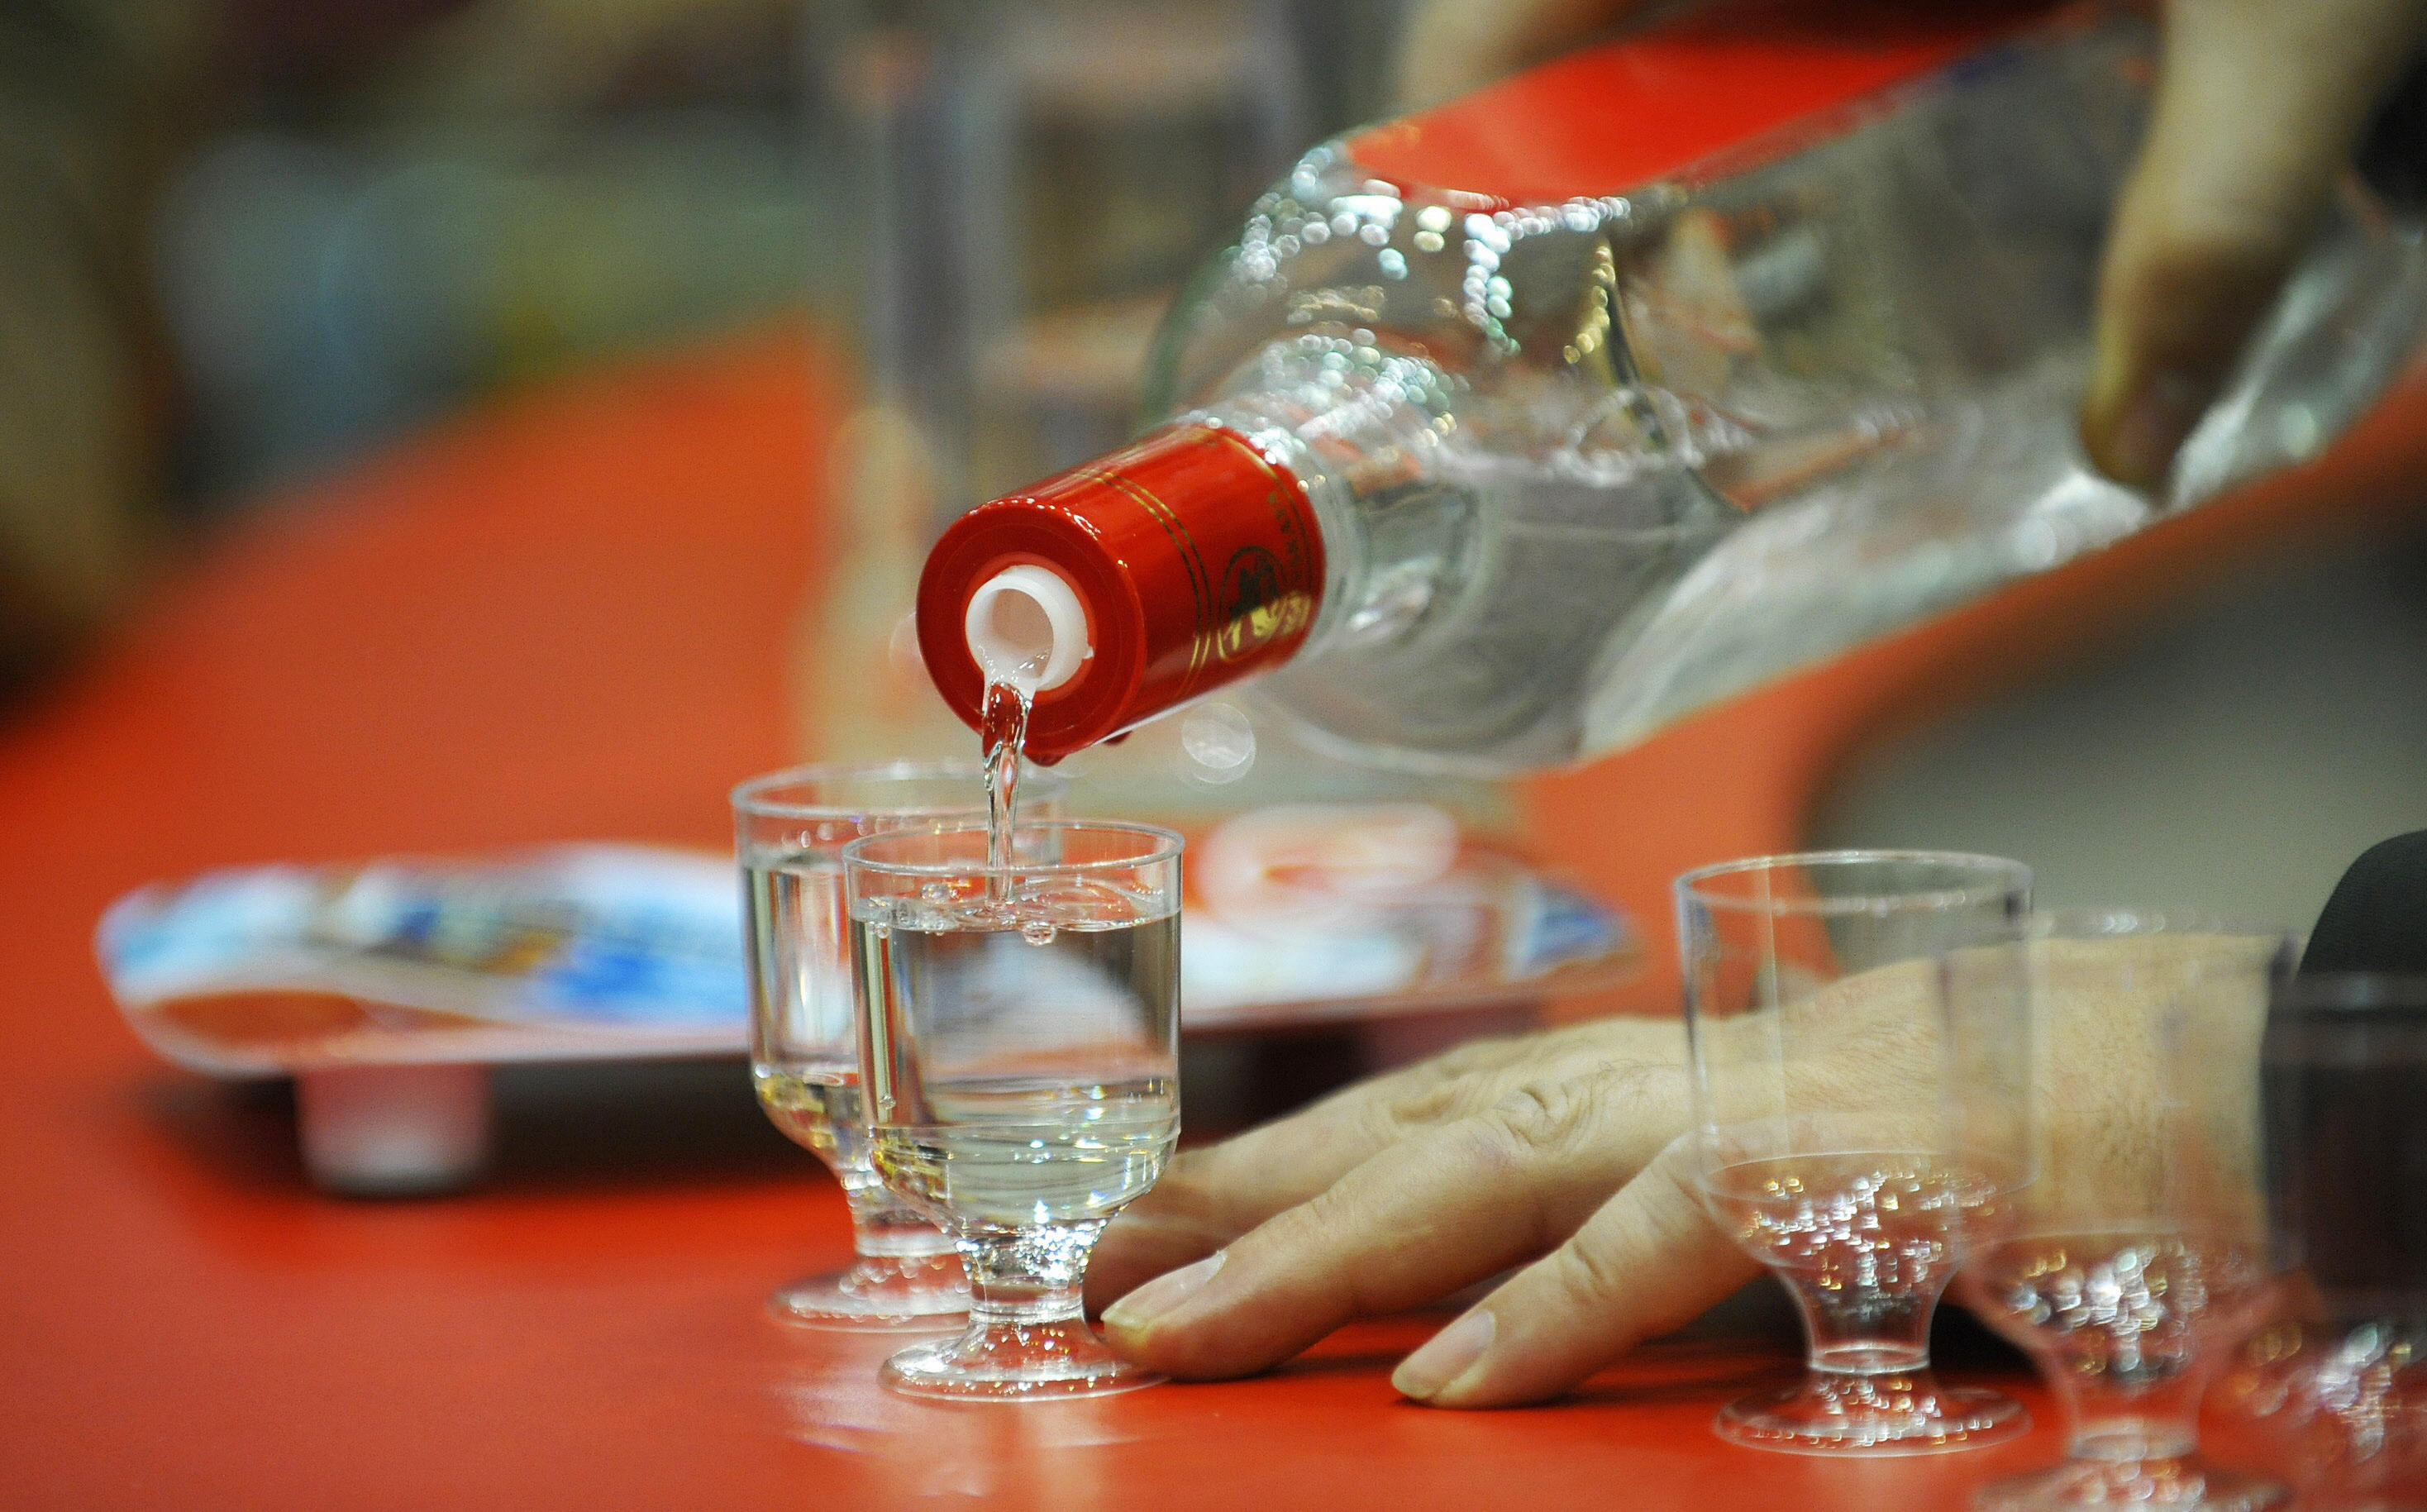 A man pours glasses of Russian Vodka as final preparations are under way for the International Green Week (Gruene Woche) Food and Agriculture Trade Fair in Berlin January 16, 2009. The Netherlands is the guest of honour at the fair which opens from 16 to 25 January 2009. AFP PHOTO DDP / MICHAEL GOTTSCHALK GERMANY OUT (Photo credit should read MICHAEL GOTTSCHALK/AFP/Getty Images)